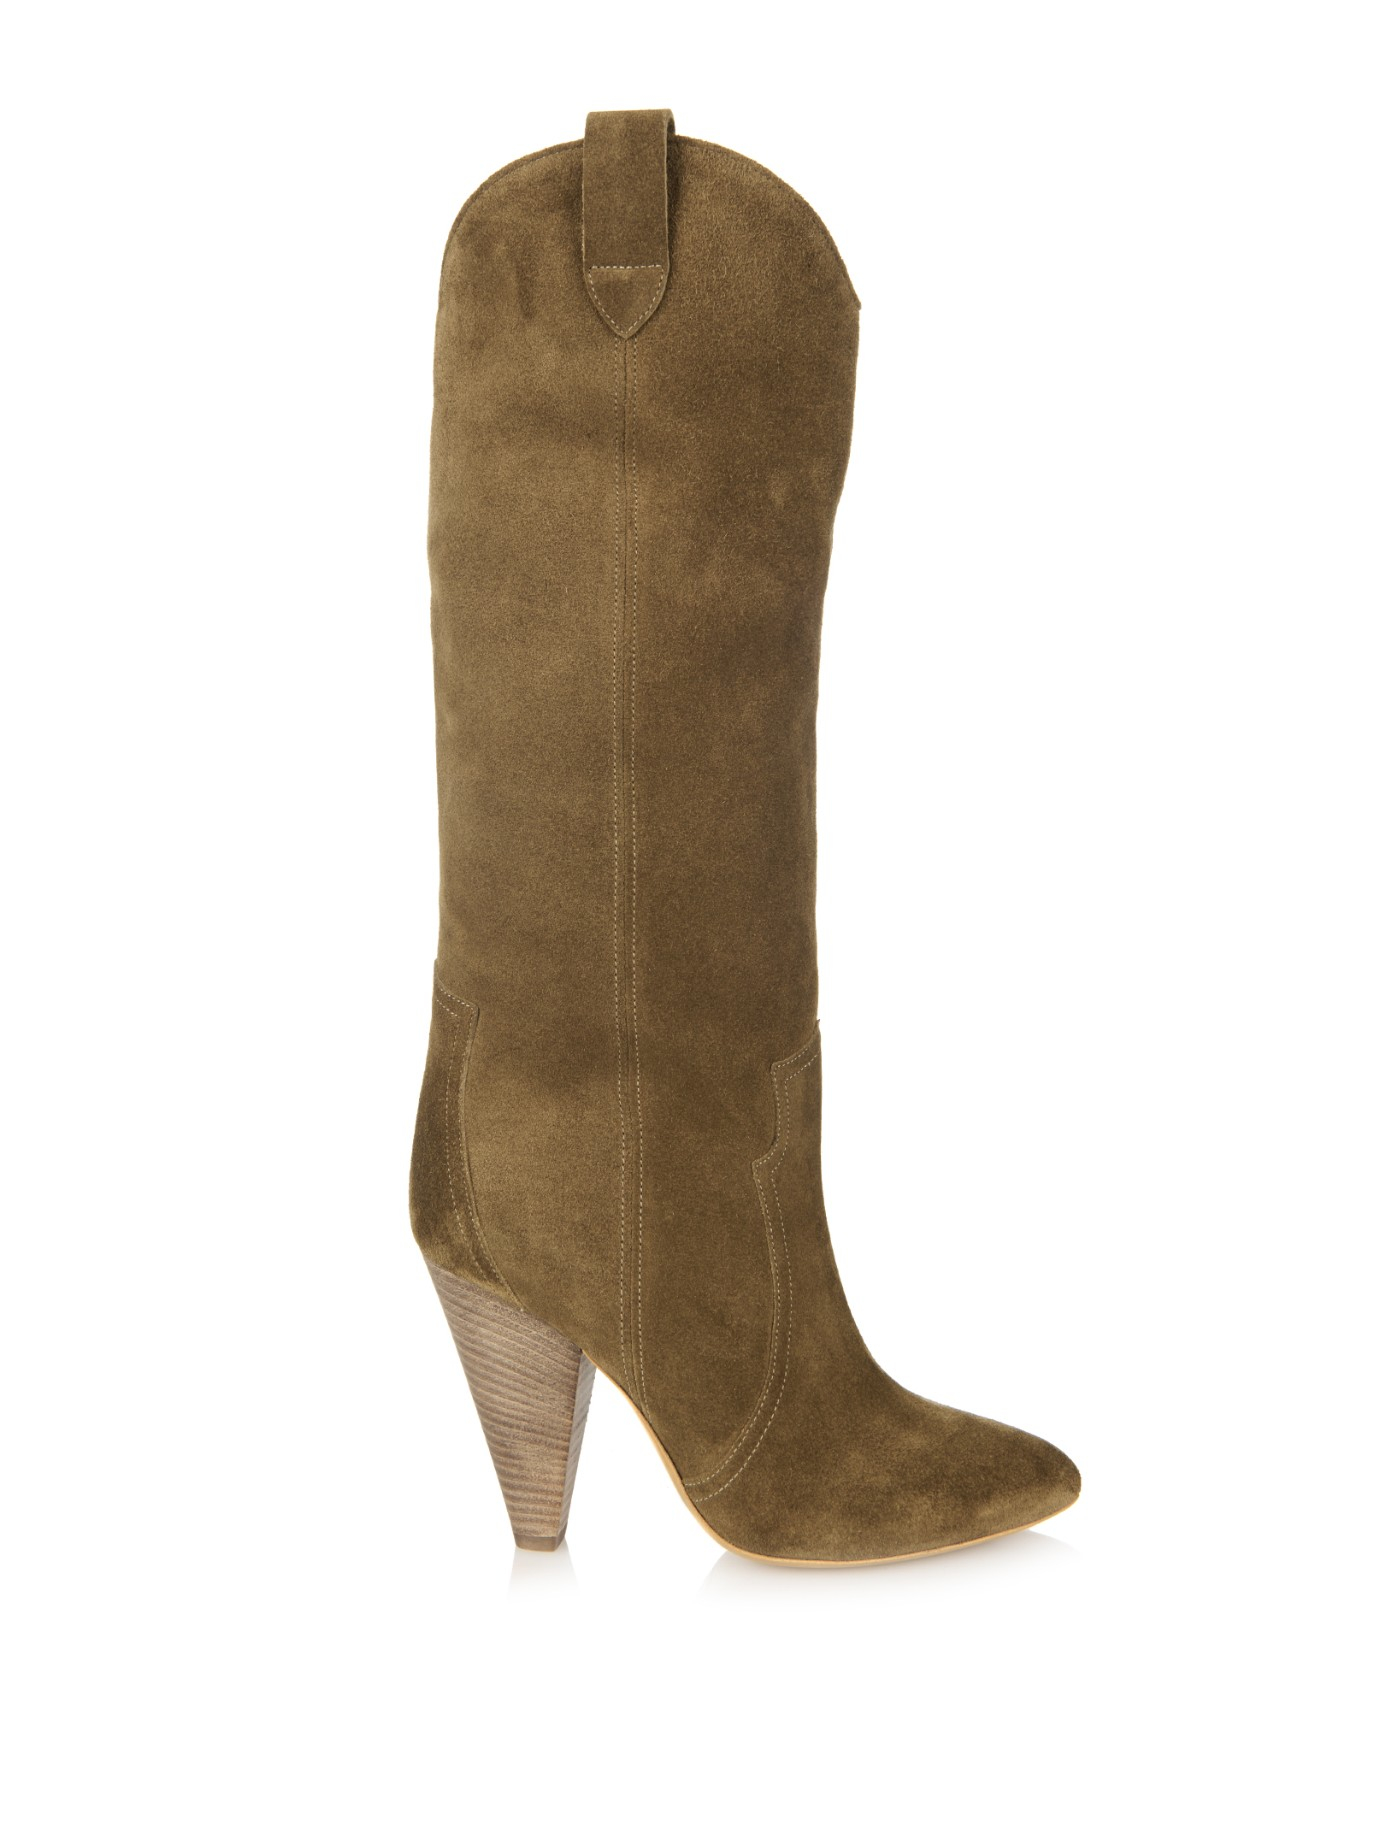 isabel marant toile runa suede boots in brown lyst. Black Bedroom Furniture Sets. Home Design Ideas